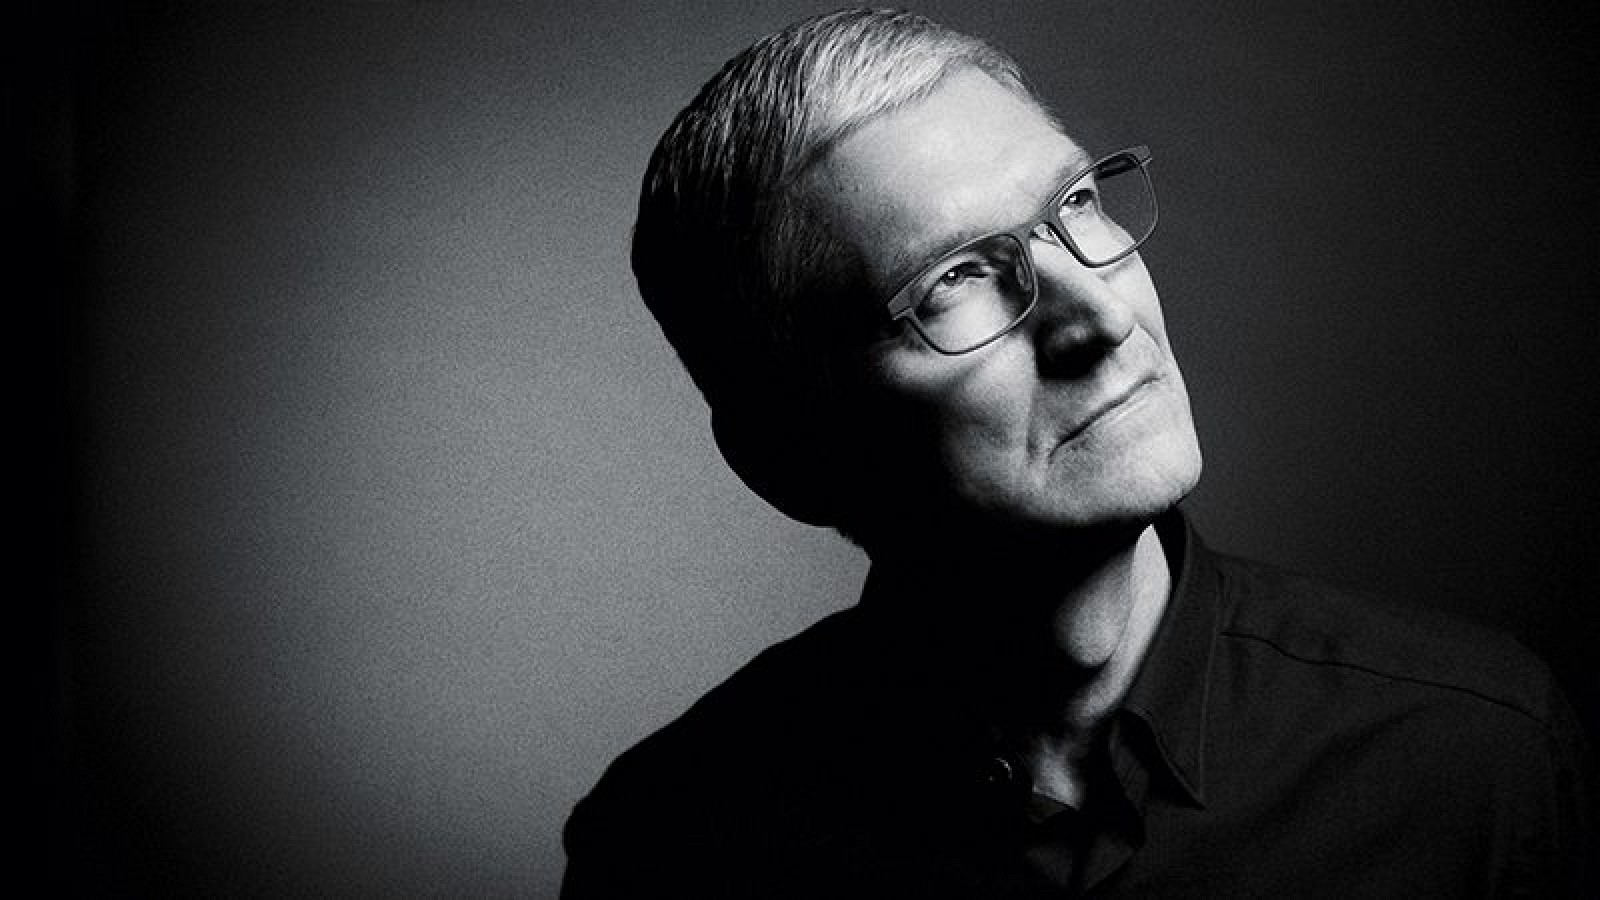 Tim Cook Says Apple Is Always Focused On 'Products And